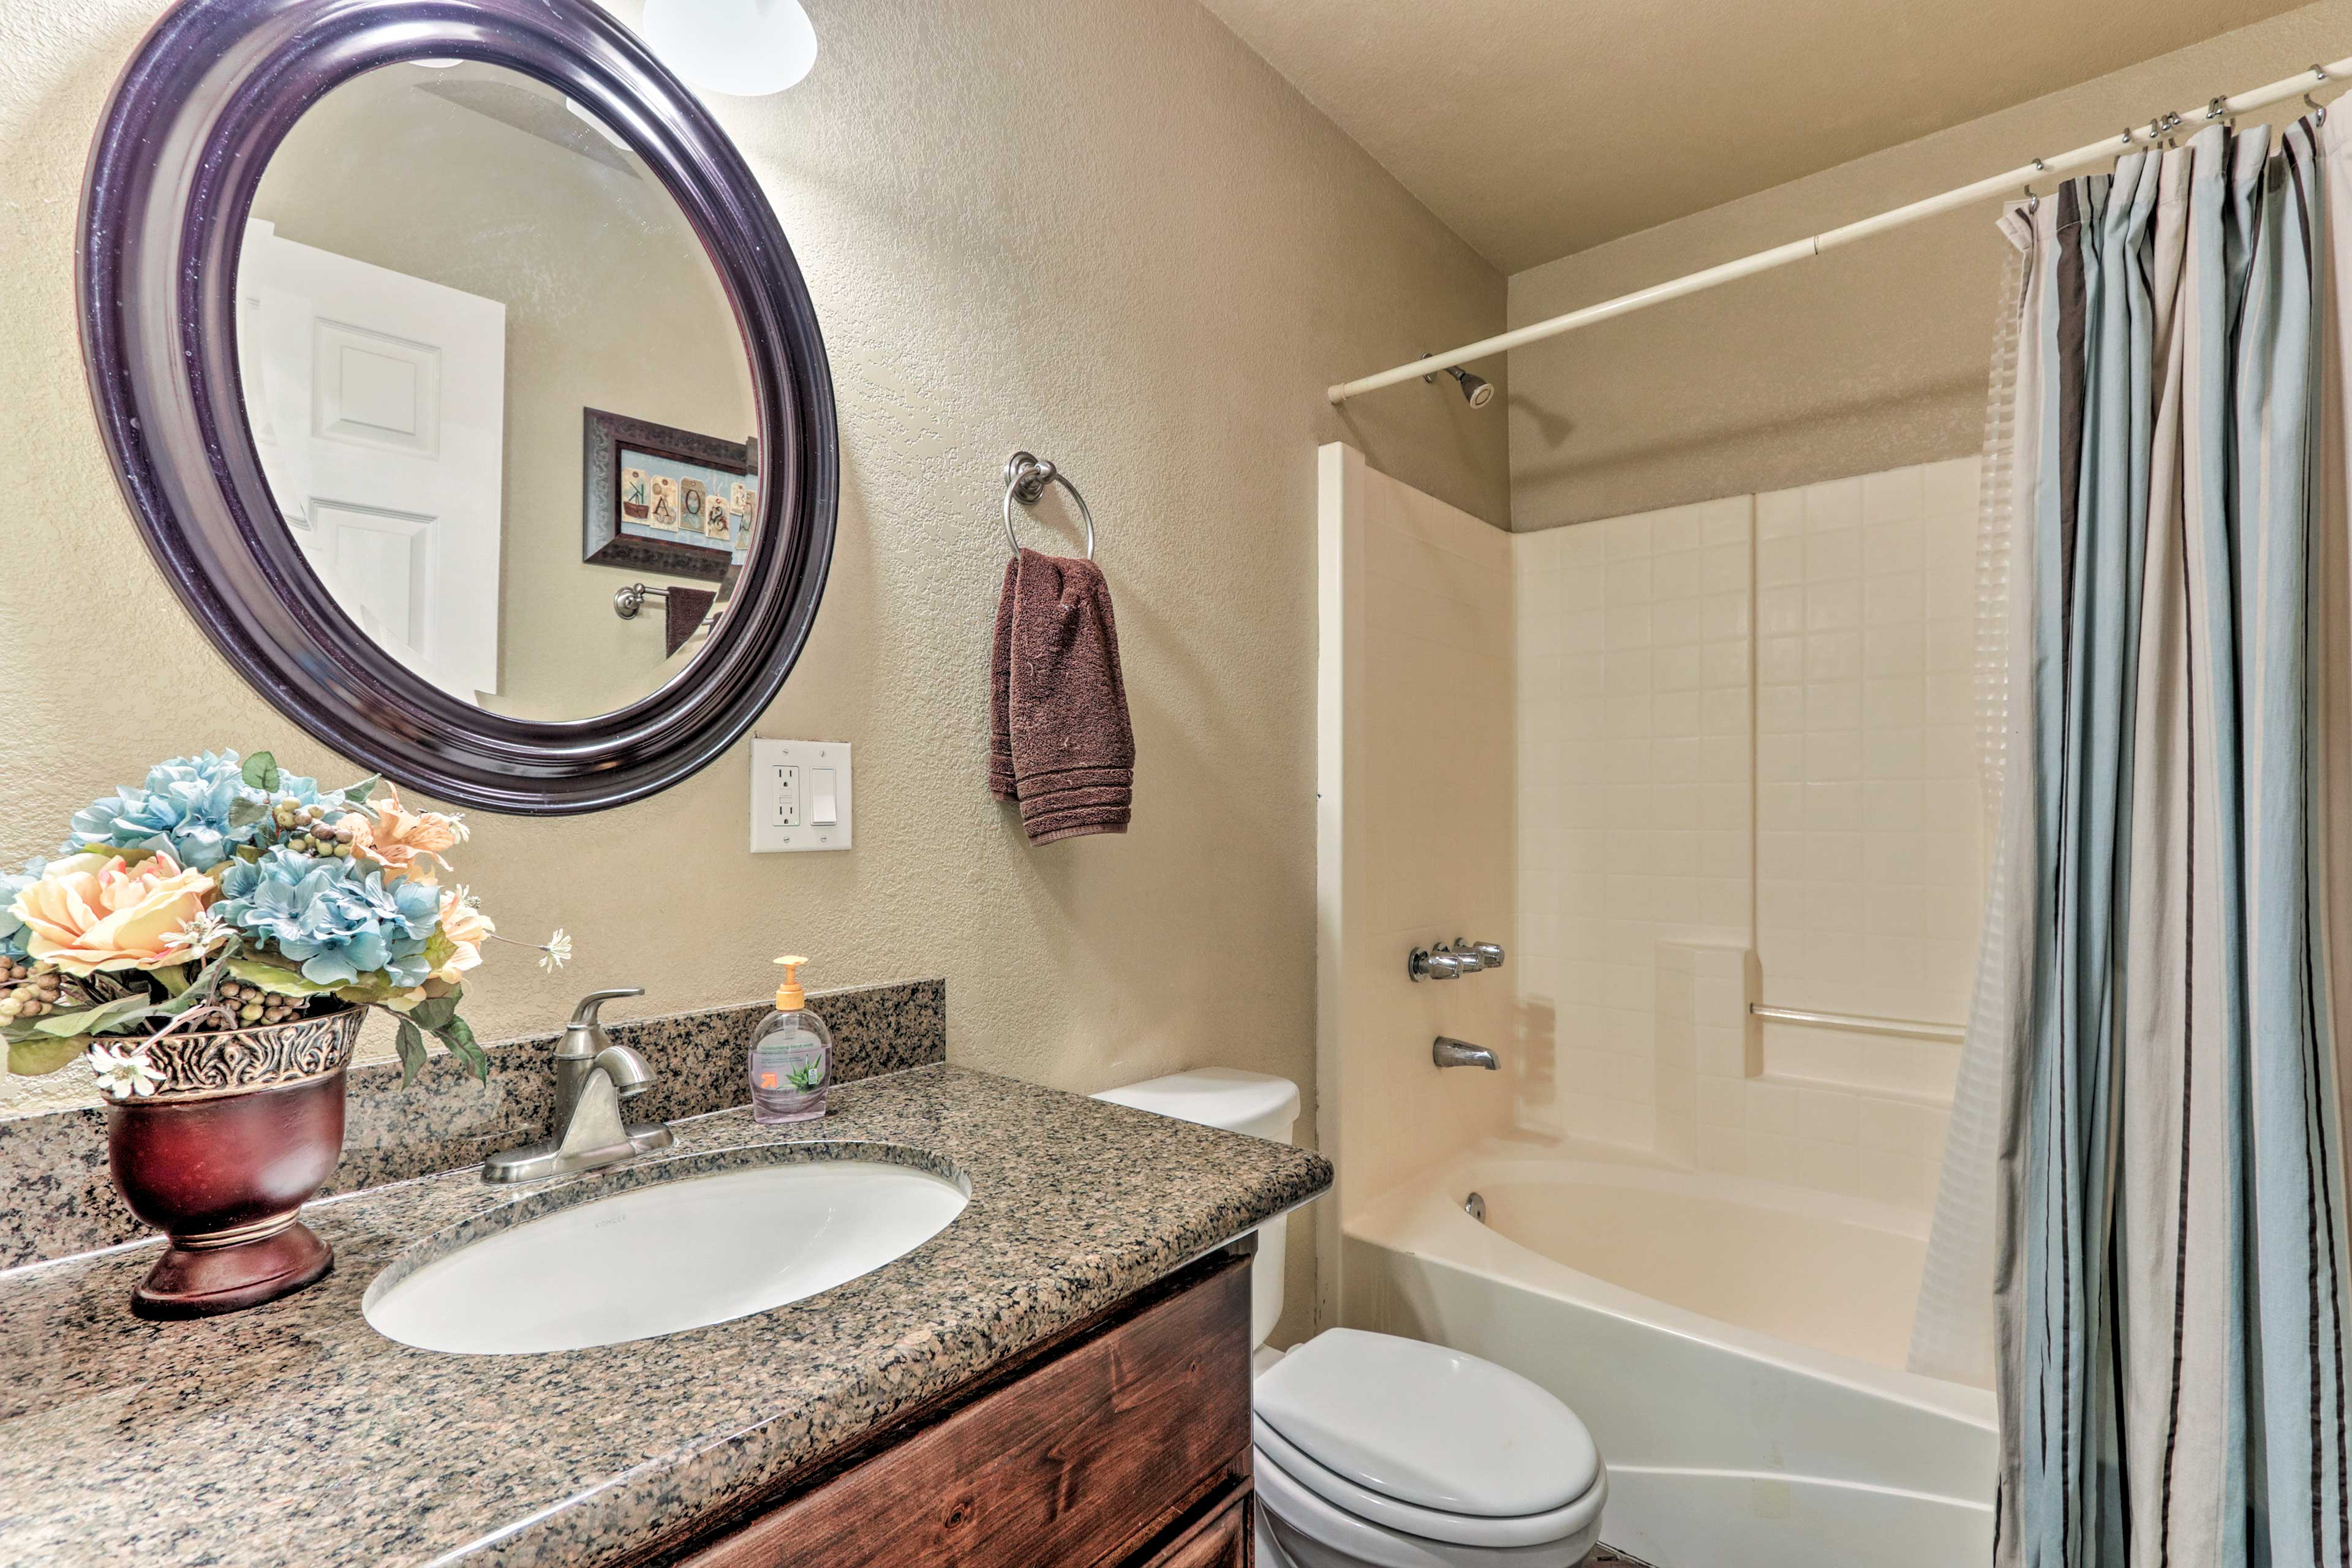 Soft provided towels complete this full bathroom.